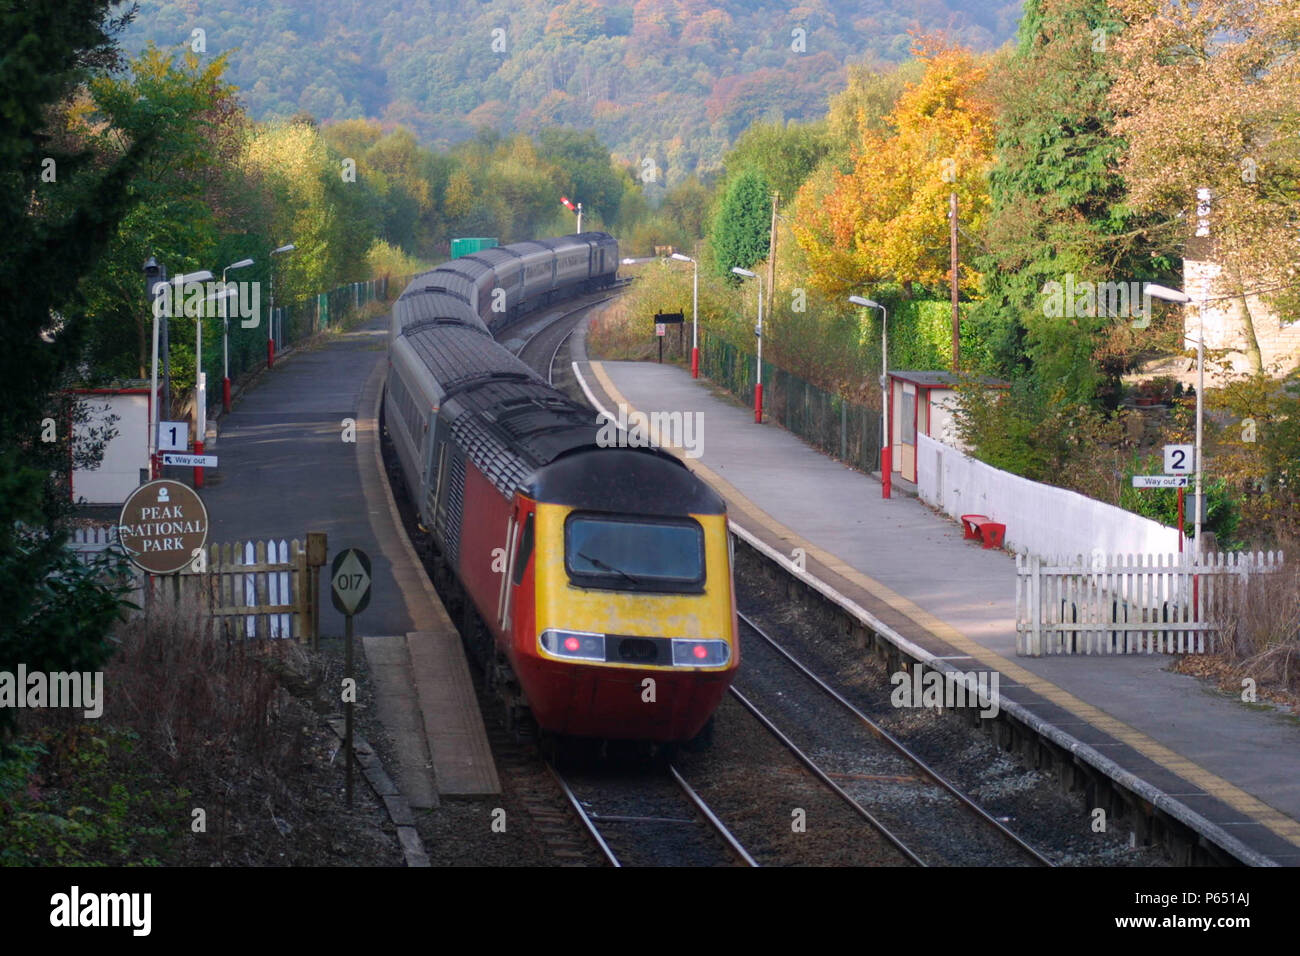 A Midland Mainline HST Rio service heads north through the Peak District National Park as it passes through Grindleford Station. 2004 - Stock Image